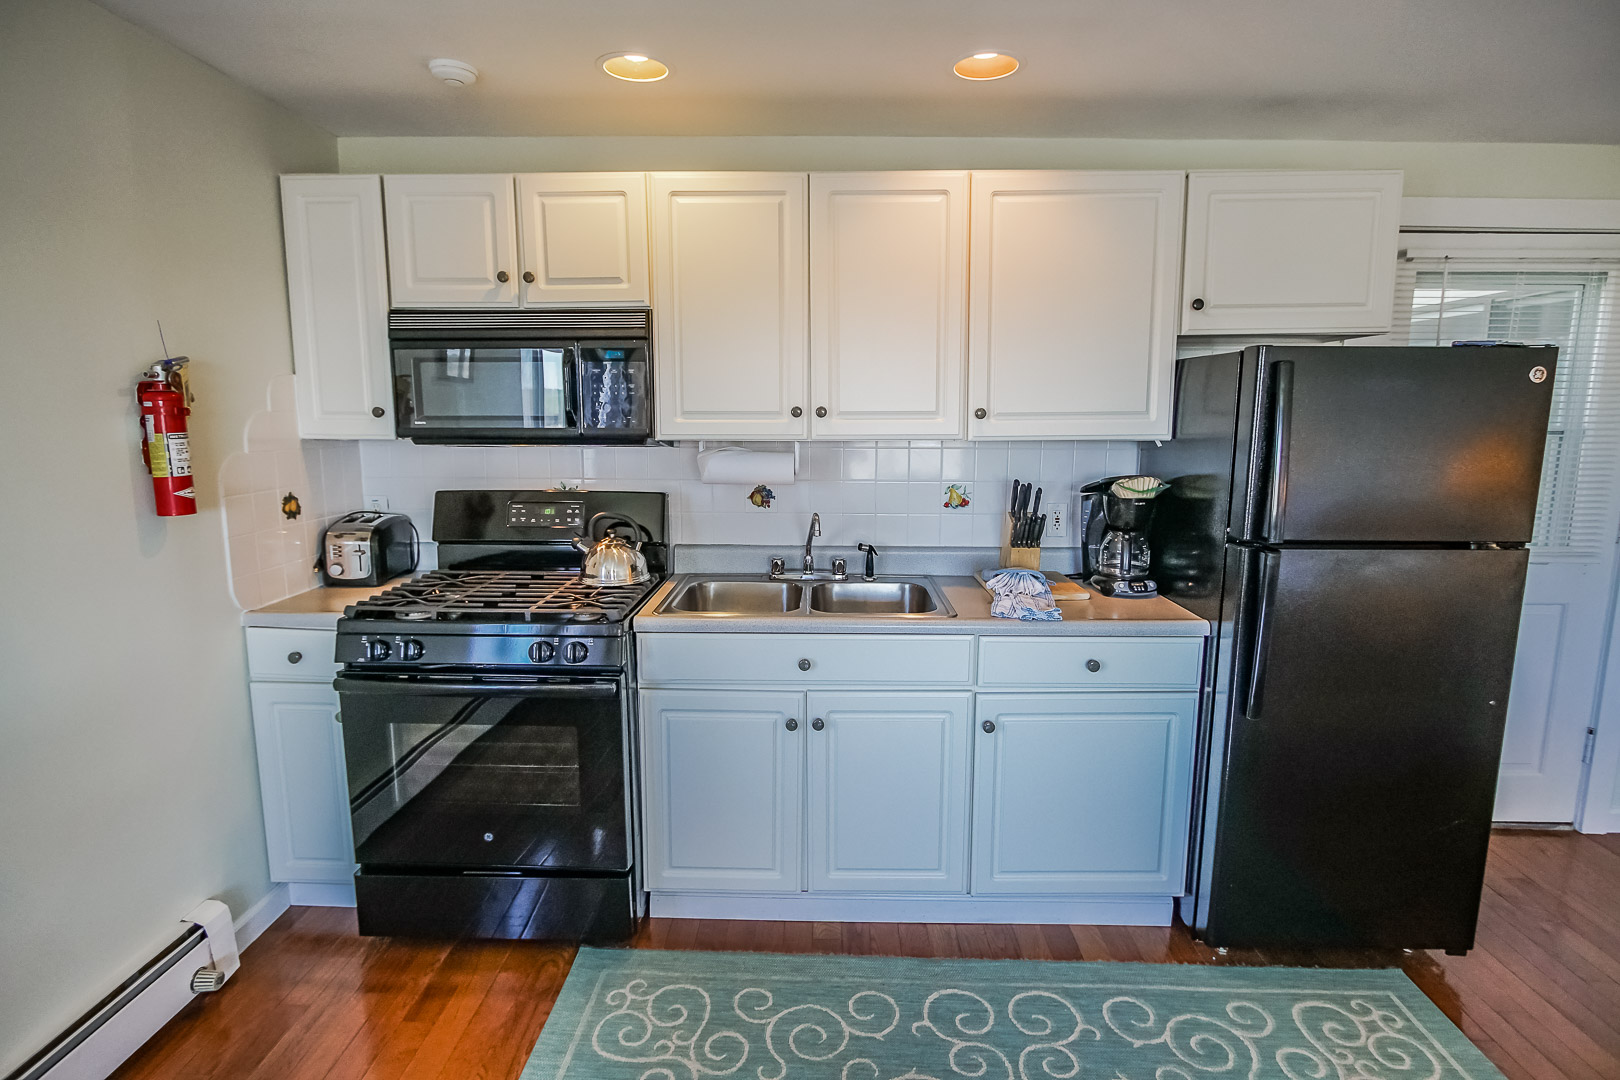 A traditional Kitchenette at VRI's Neptune House Resort in Rhode Island.